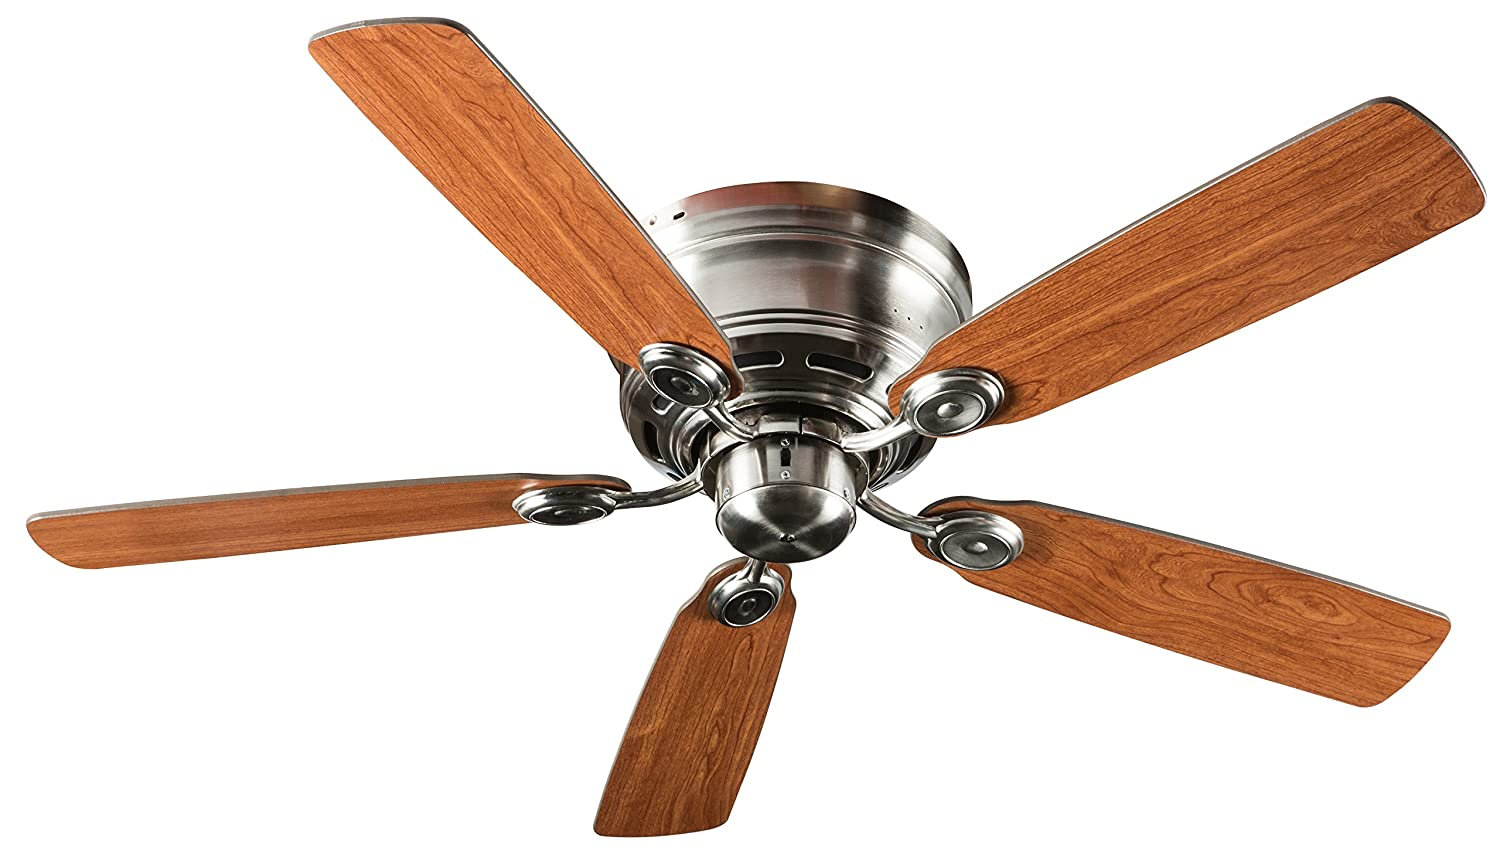 Hyperikon Remote Control Ceiling Fan, 42-Inch Brushed Nickel Ceiling Fan Fixture with Five Reversible Blades - Light Fixture Not Included